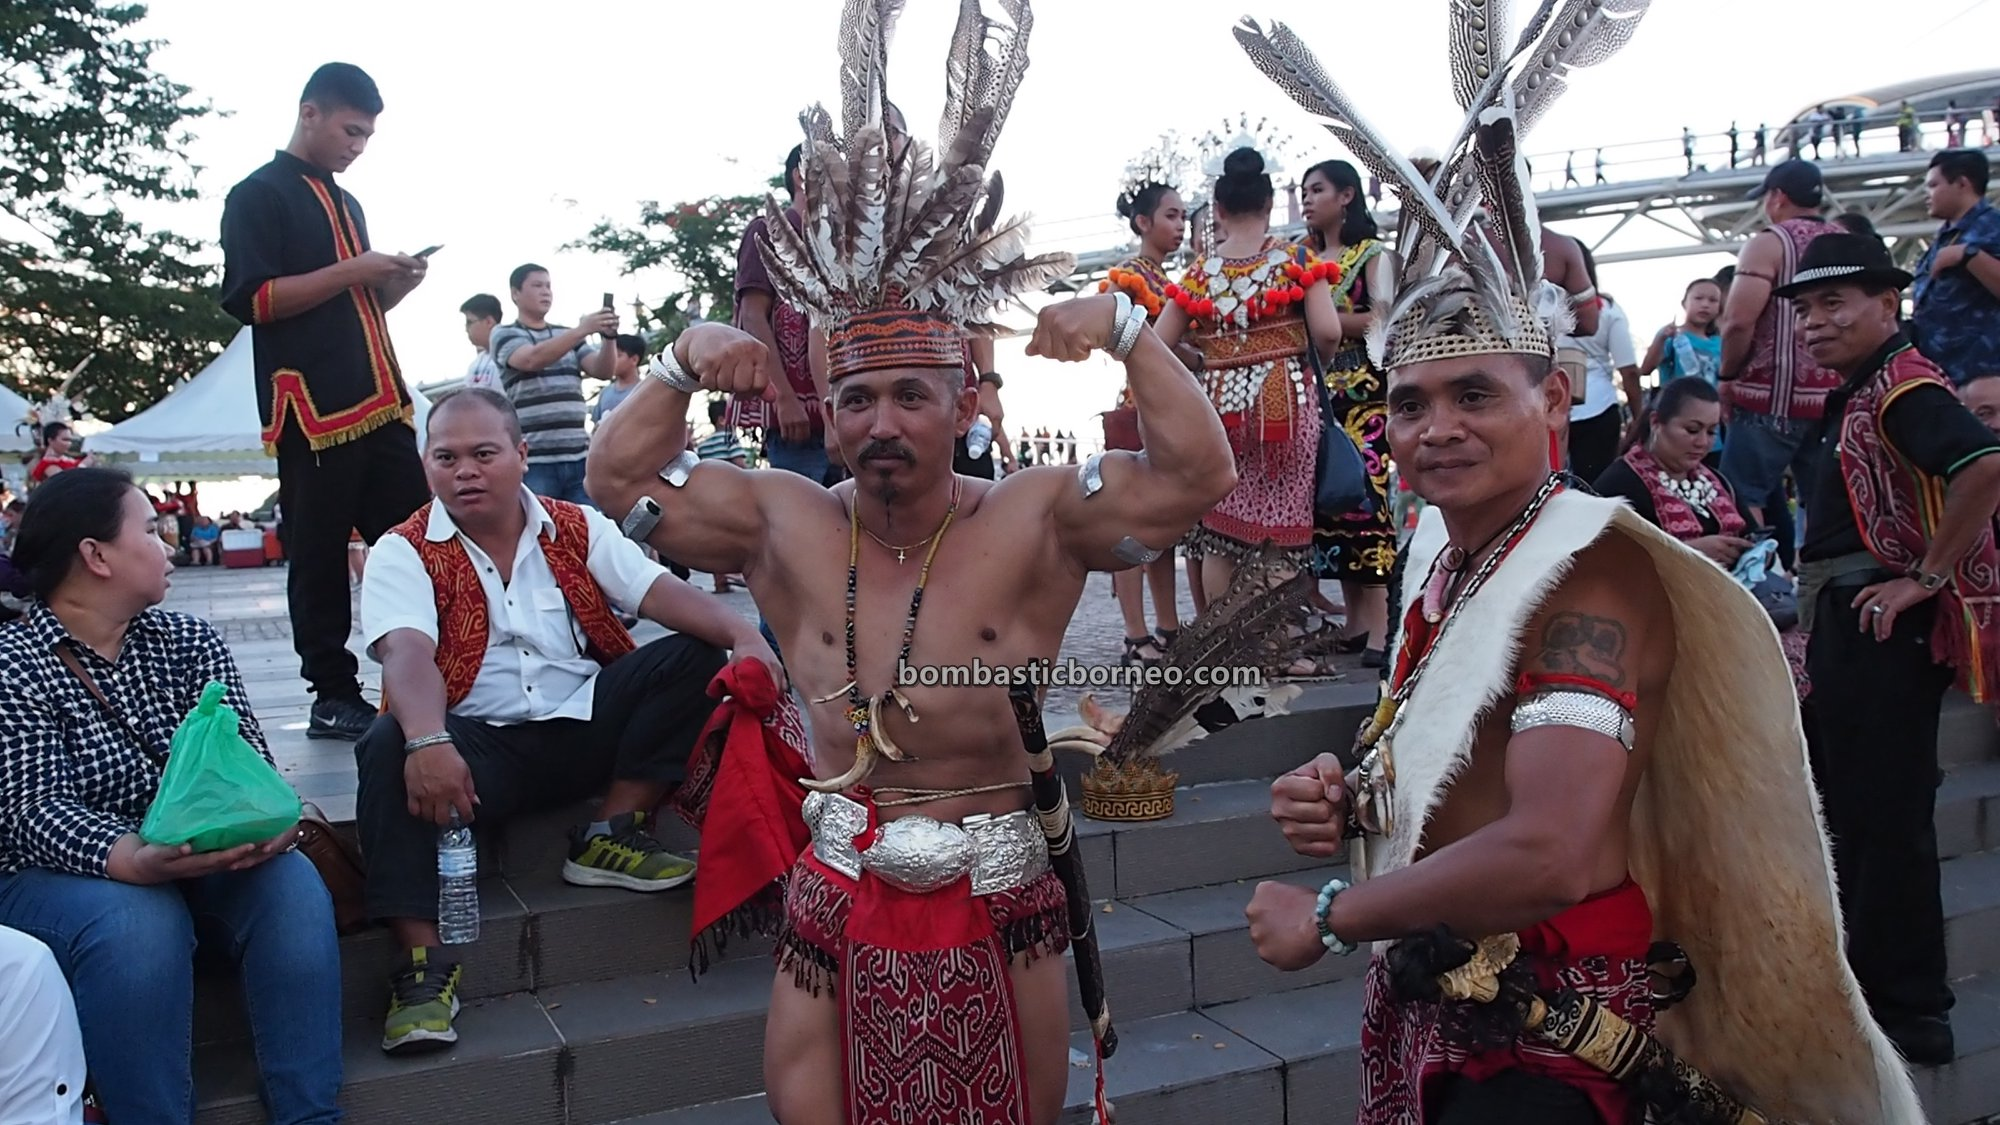 harvest festival, traditional, budaya, event, ethnic, destination, Malaysia, tribal, tribe, tourism, tourist attraction, Cross Border, 砂拉越土著丰收节日, 马来西亚原住民达雅, Orang Ulu,